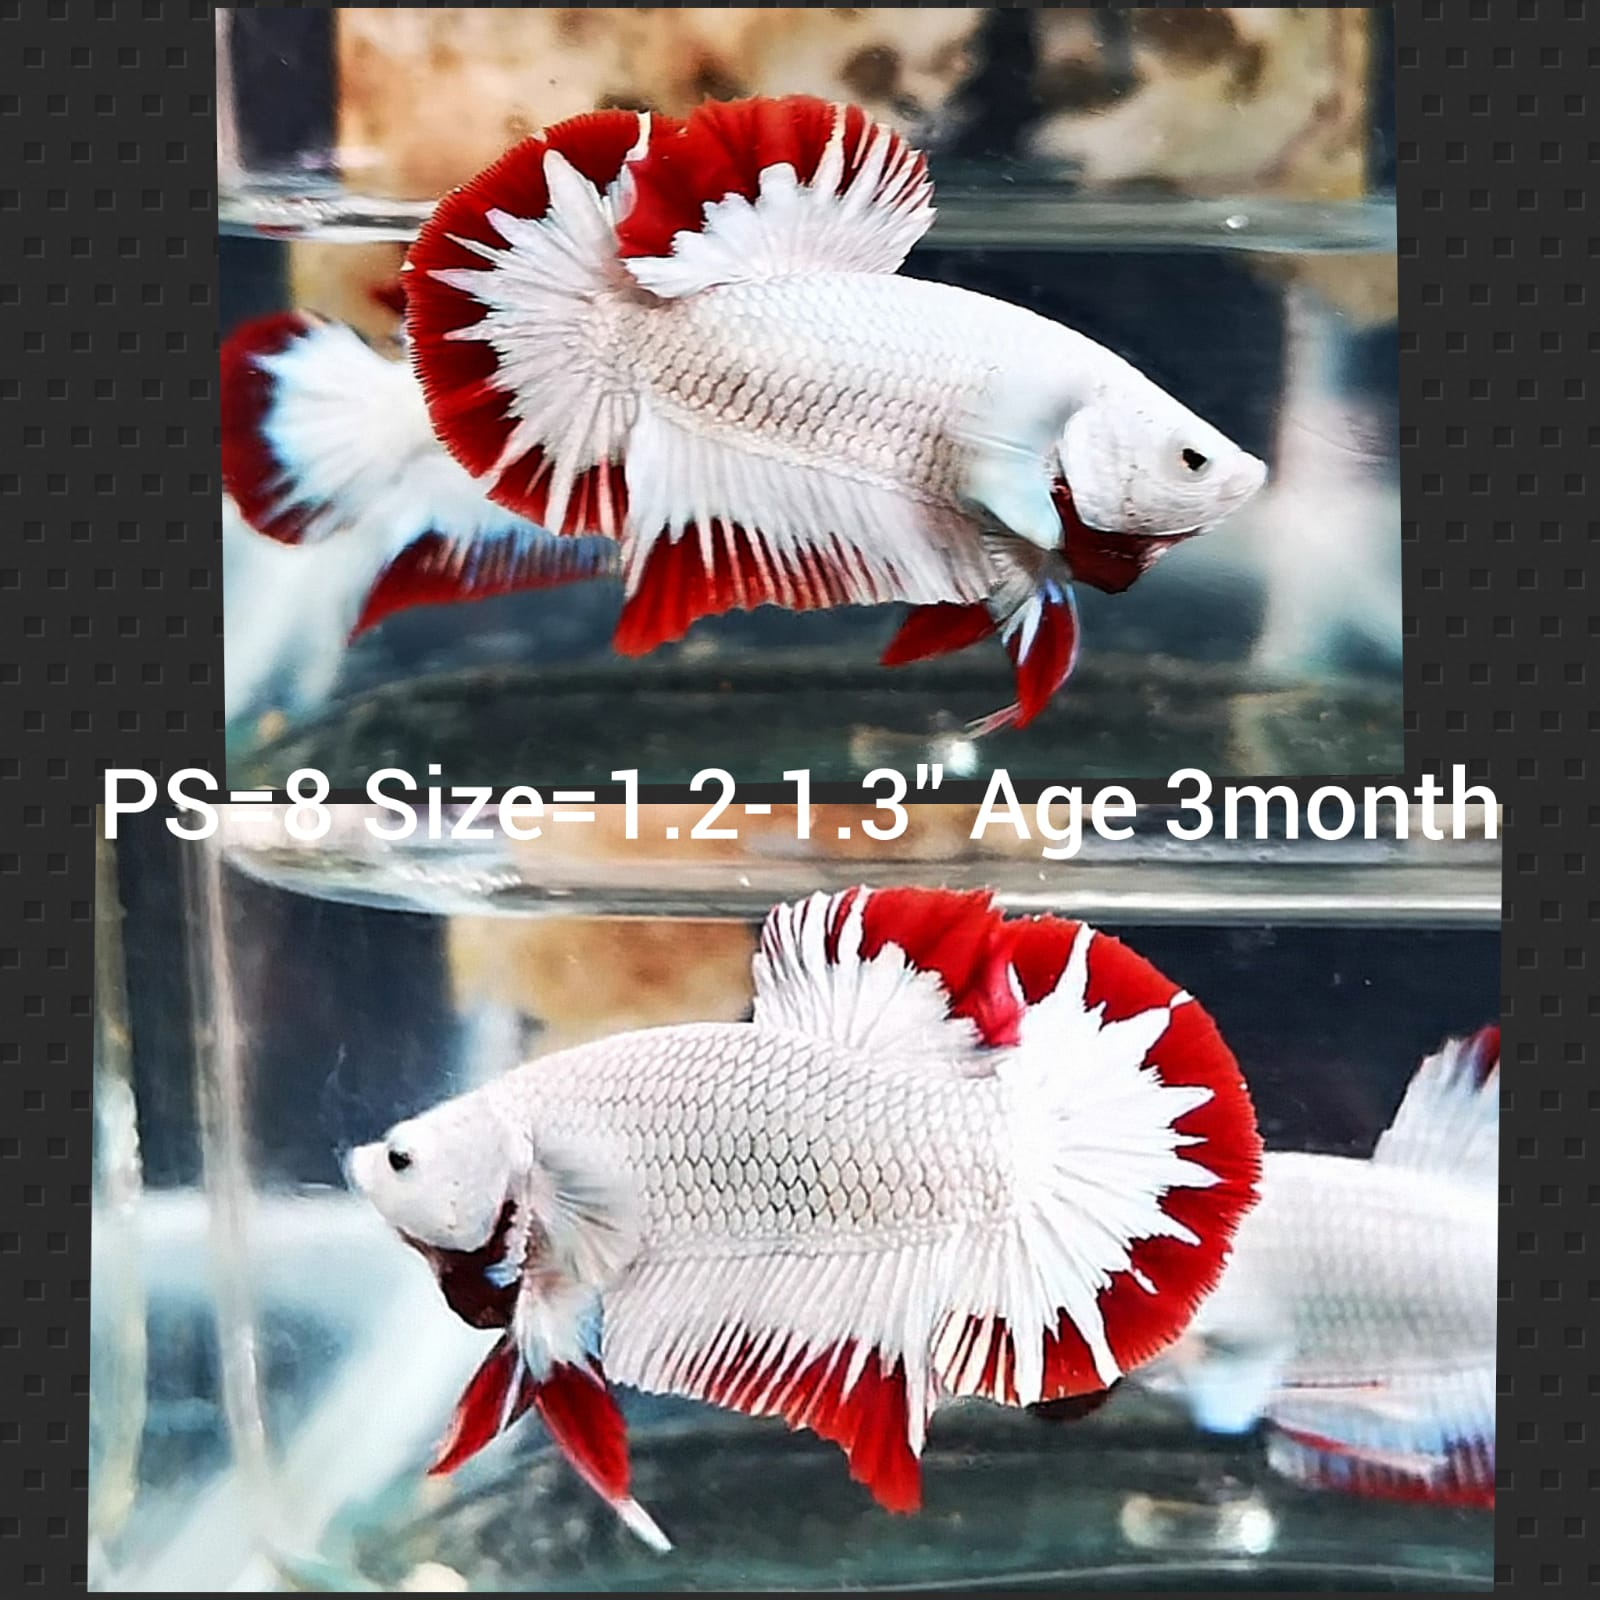 Red Dragon Star Tail Plakat Male Betta (PS-8)P 10/13